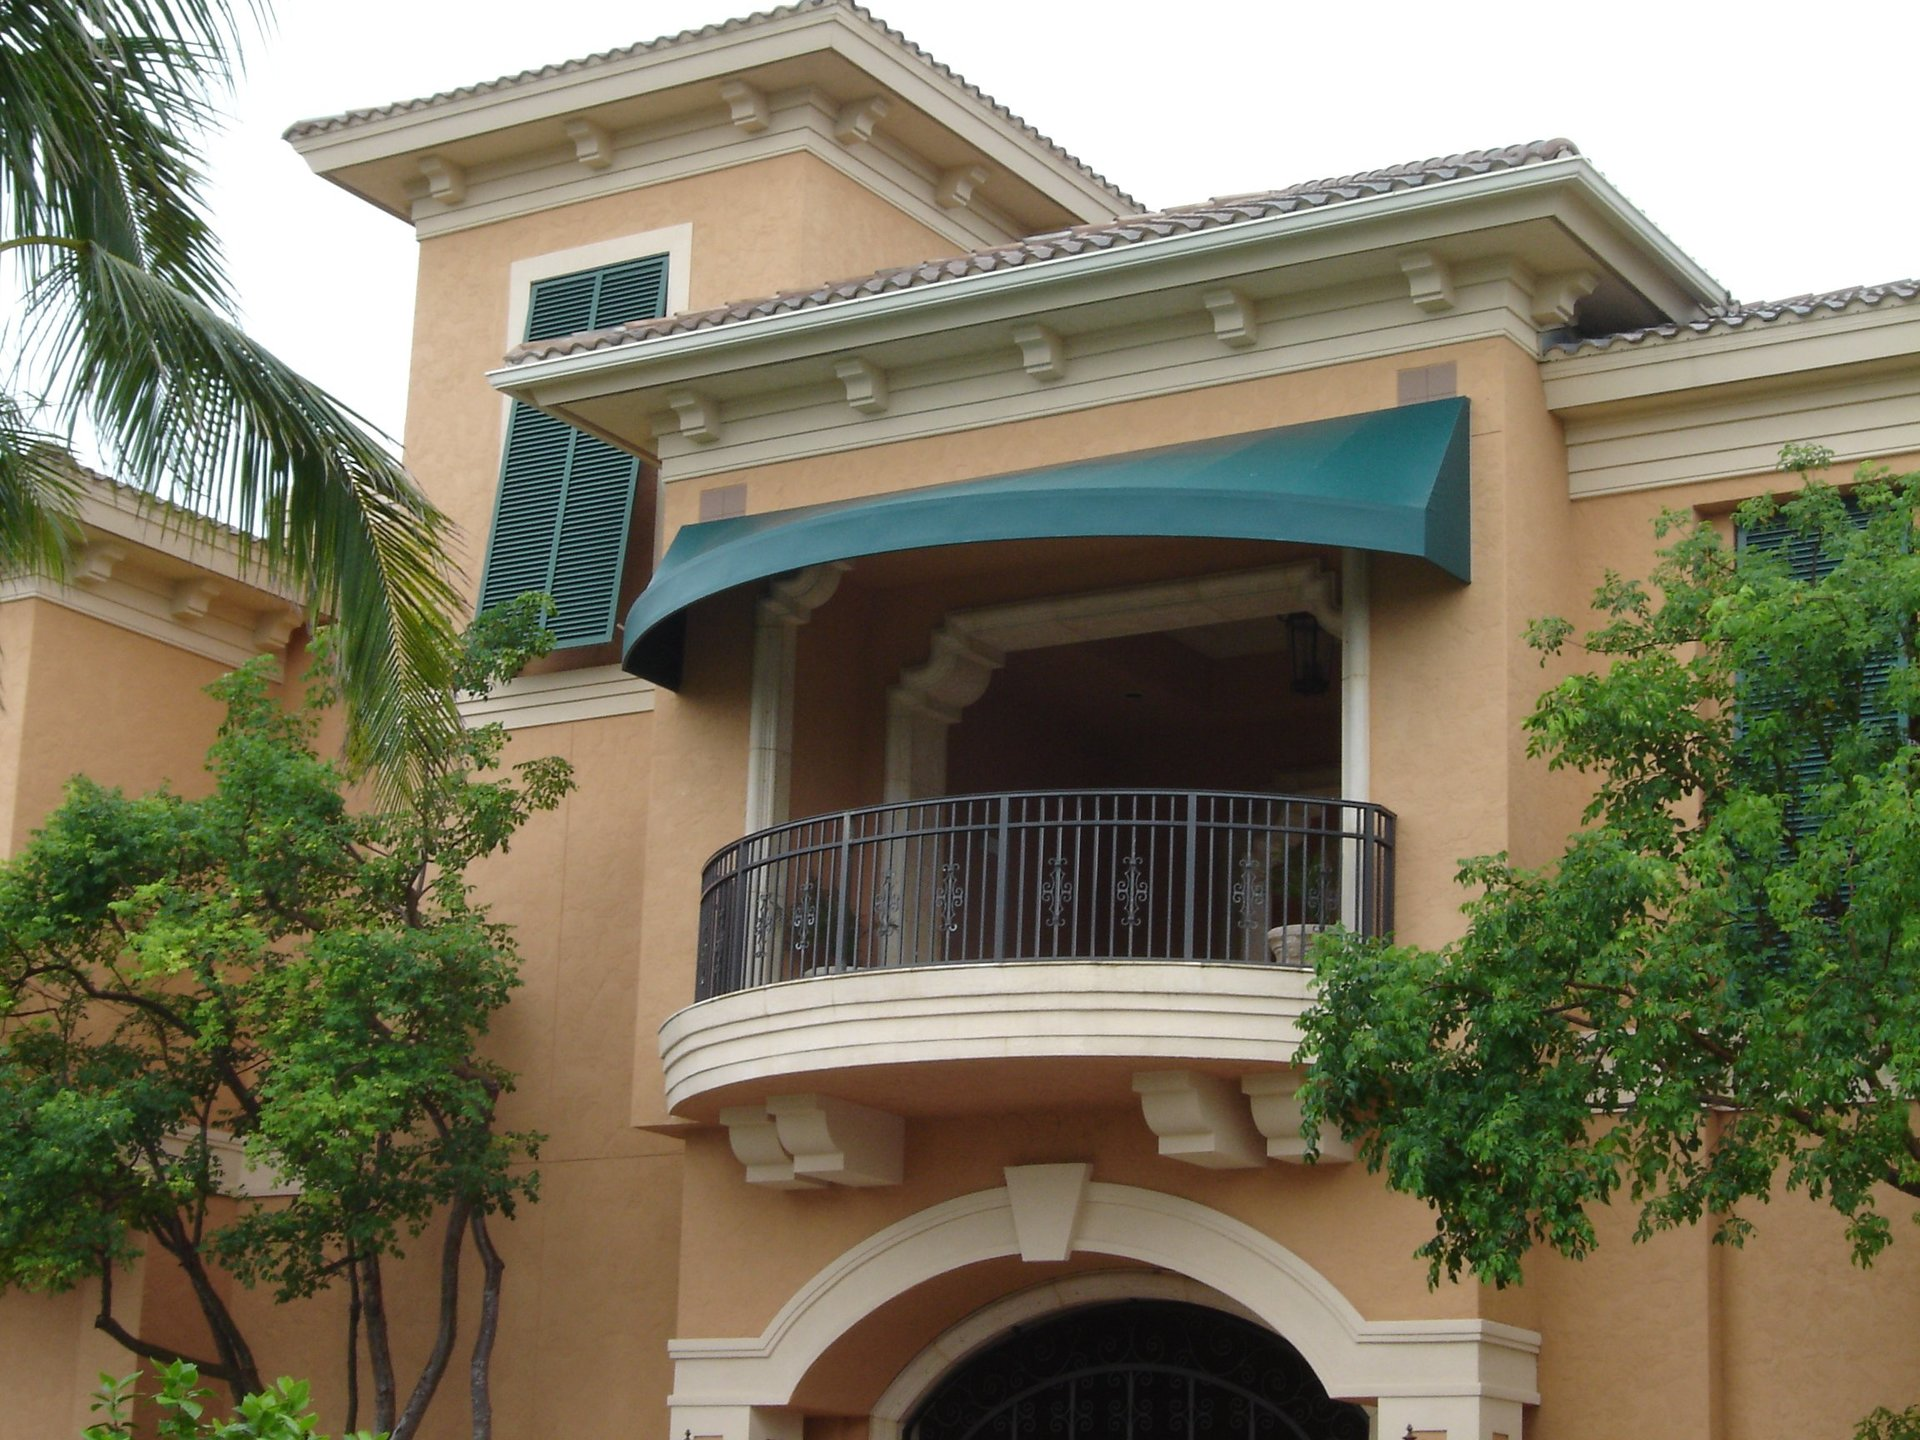 Awnings by Naples Awning image 1